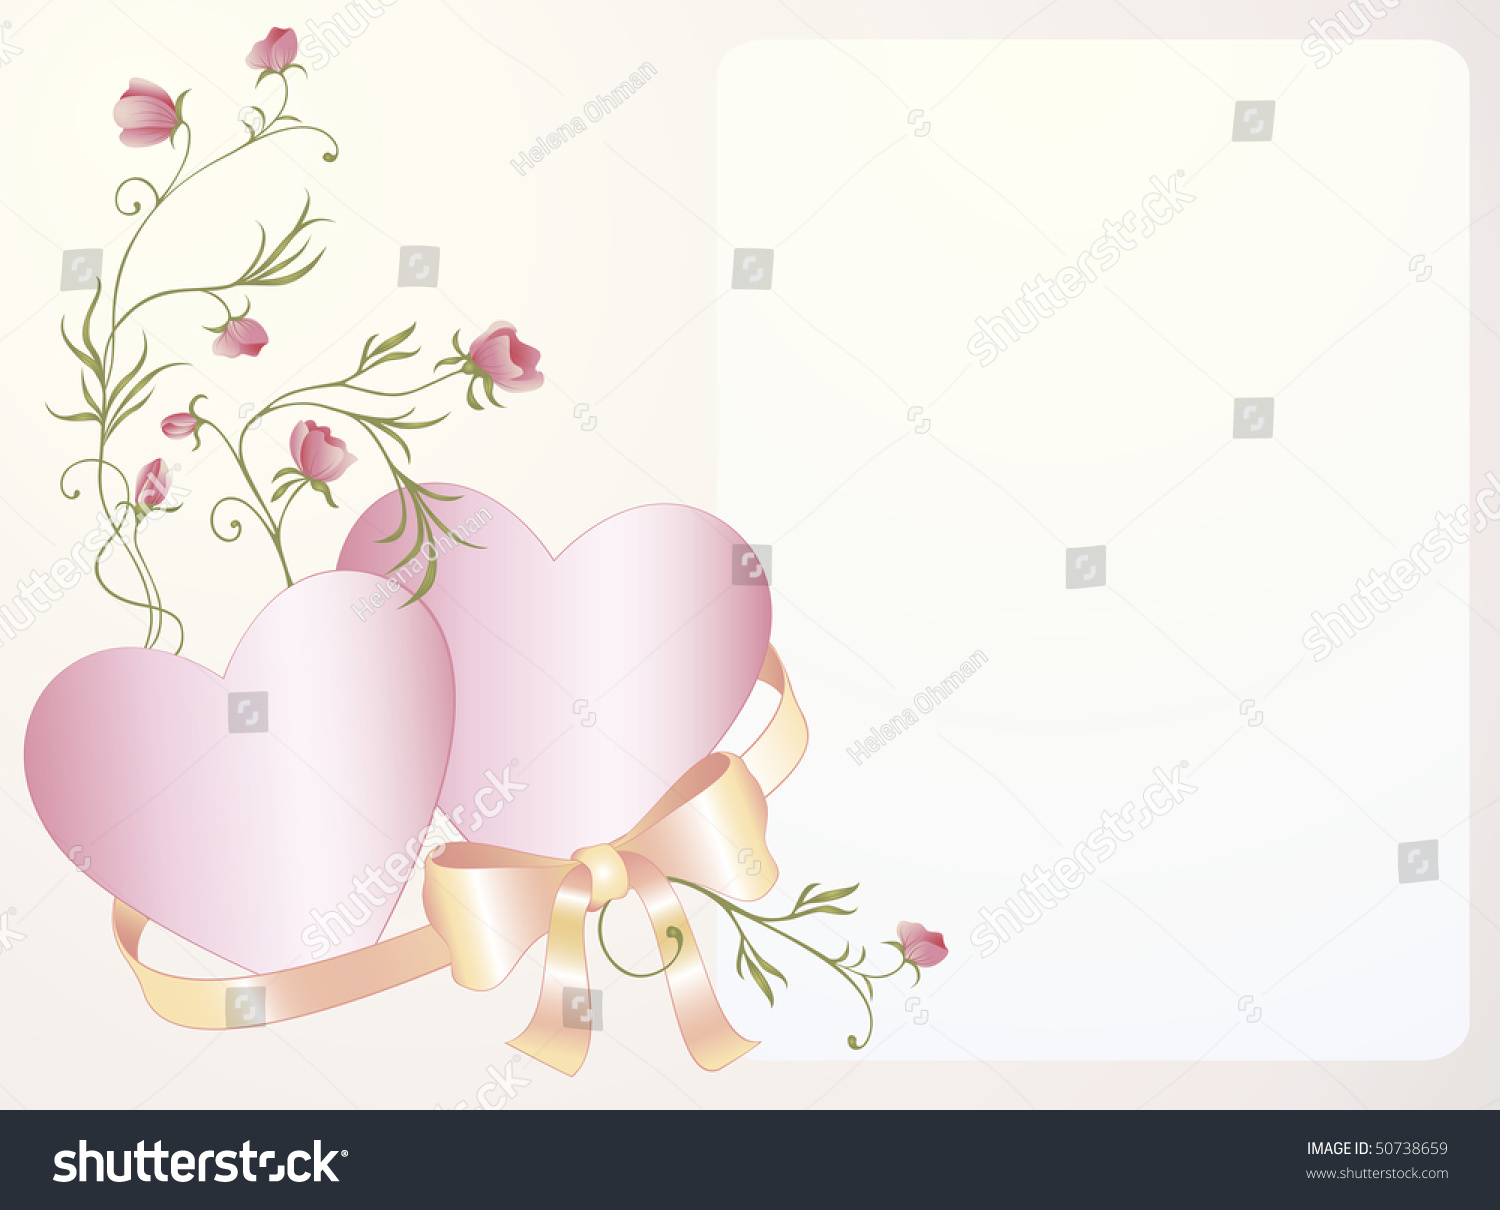 wedding invitation background with hearts rose and silk bow - Wedding Invitation Background